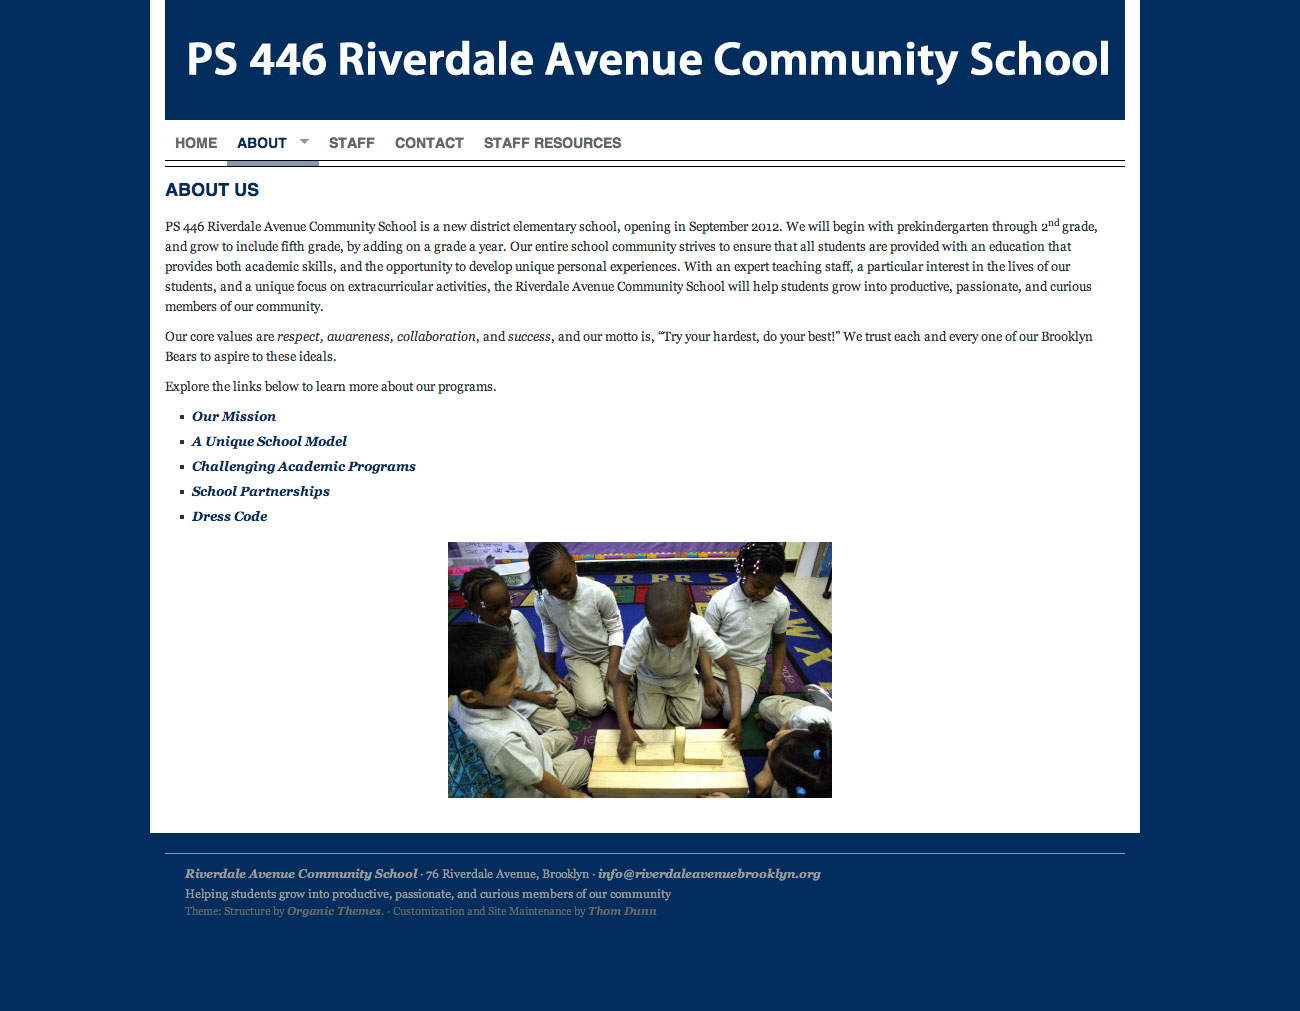 Riverdale Avenue Community School ( riverdaleavenuebrooklyn.org ), managed with WordPress